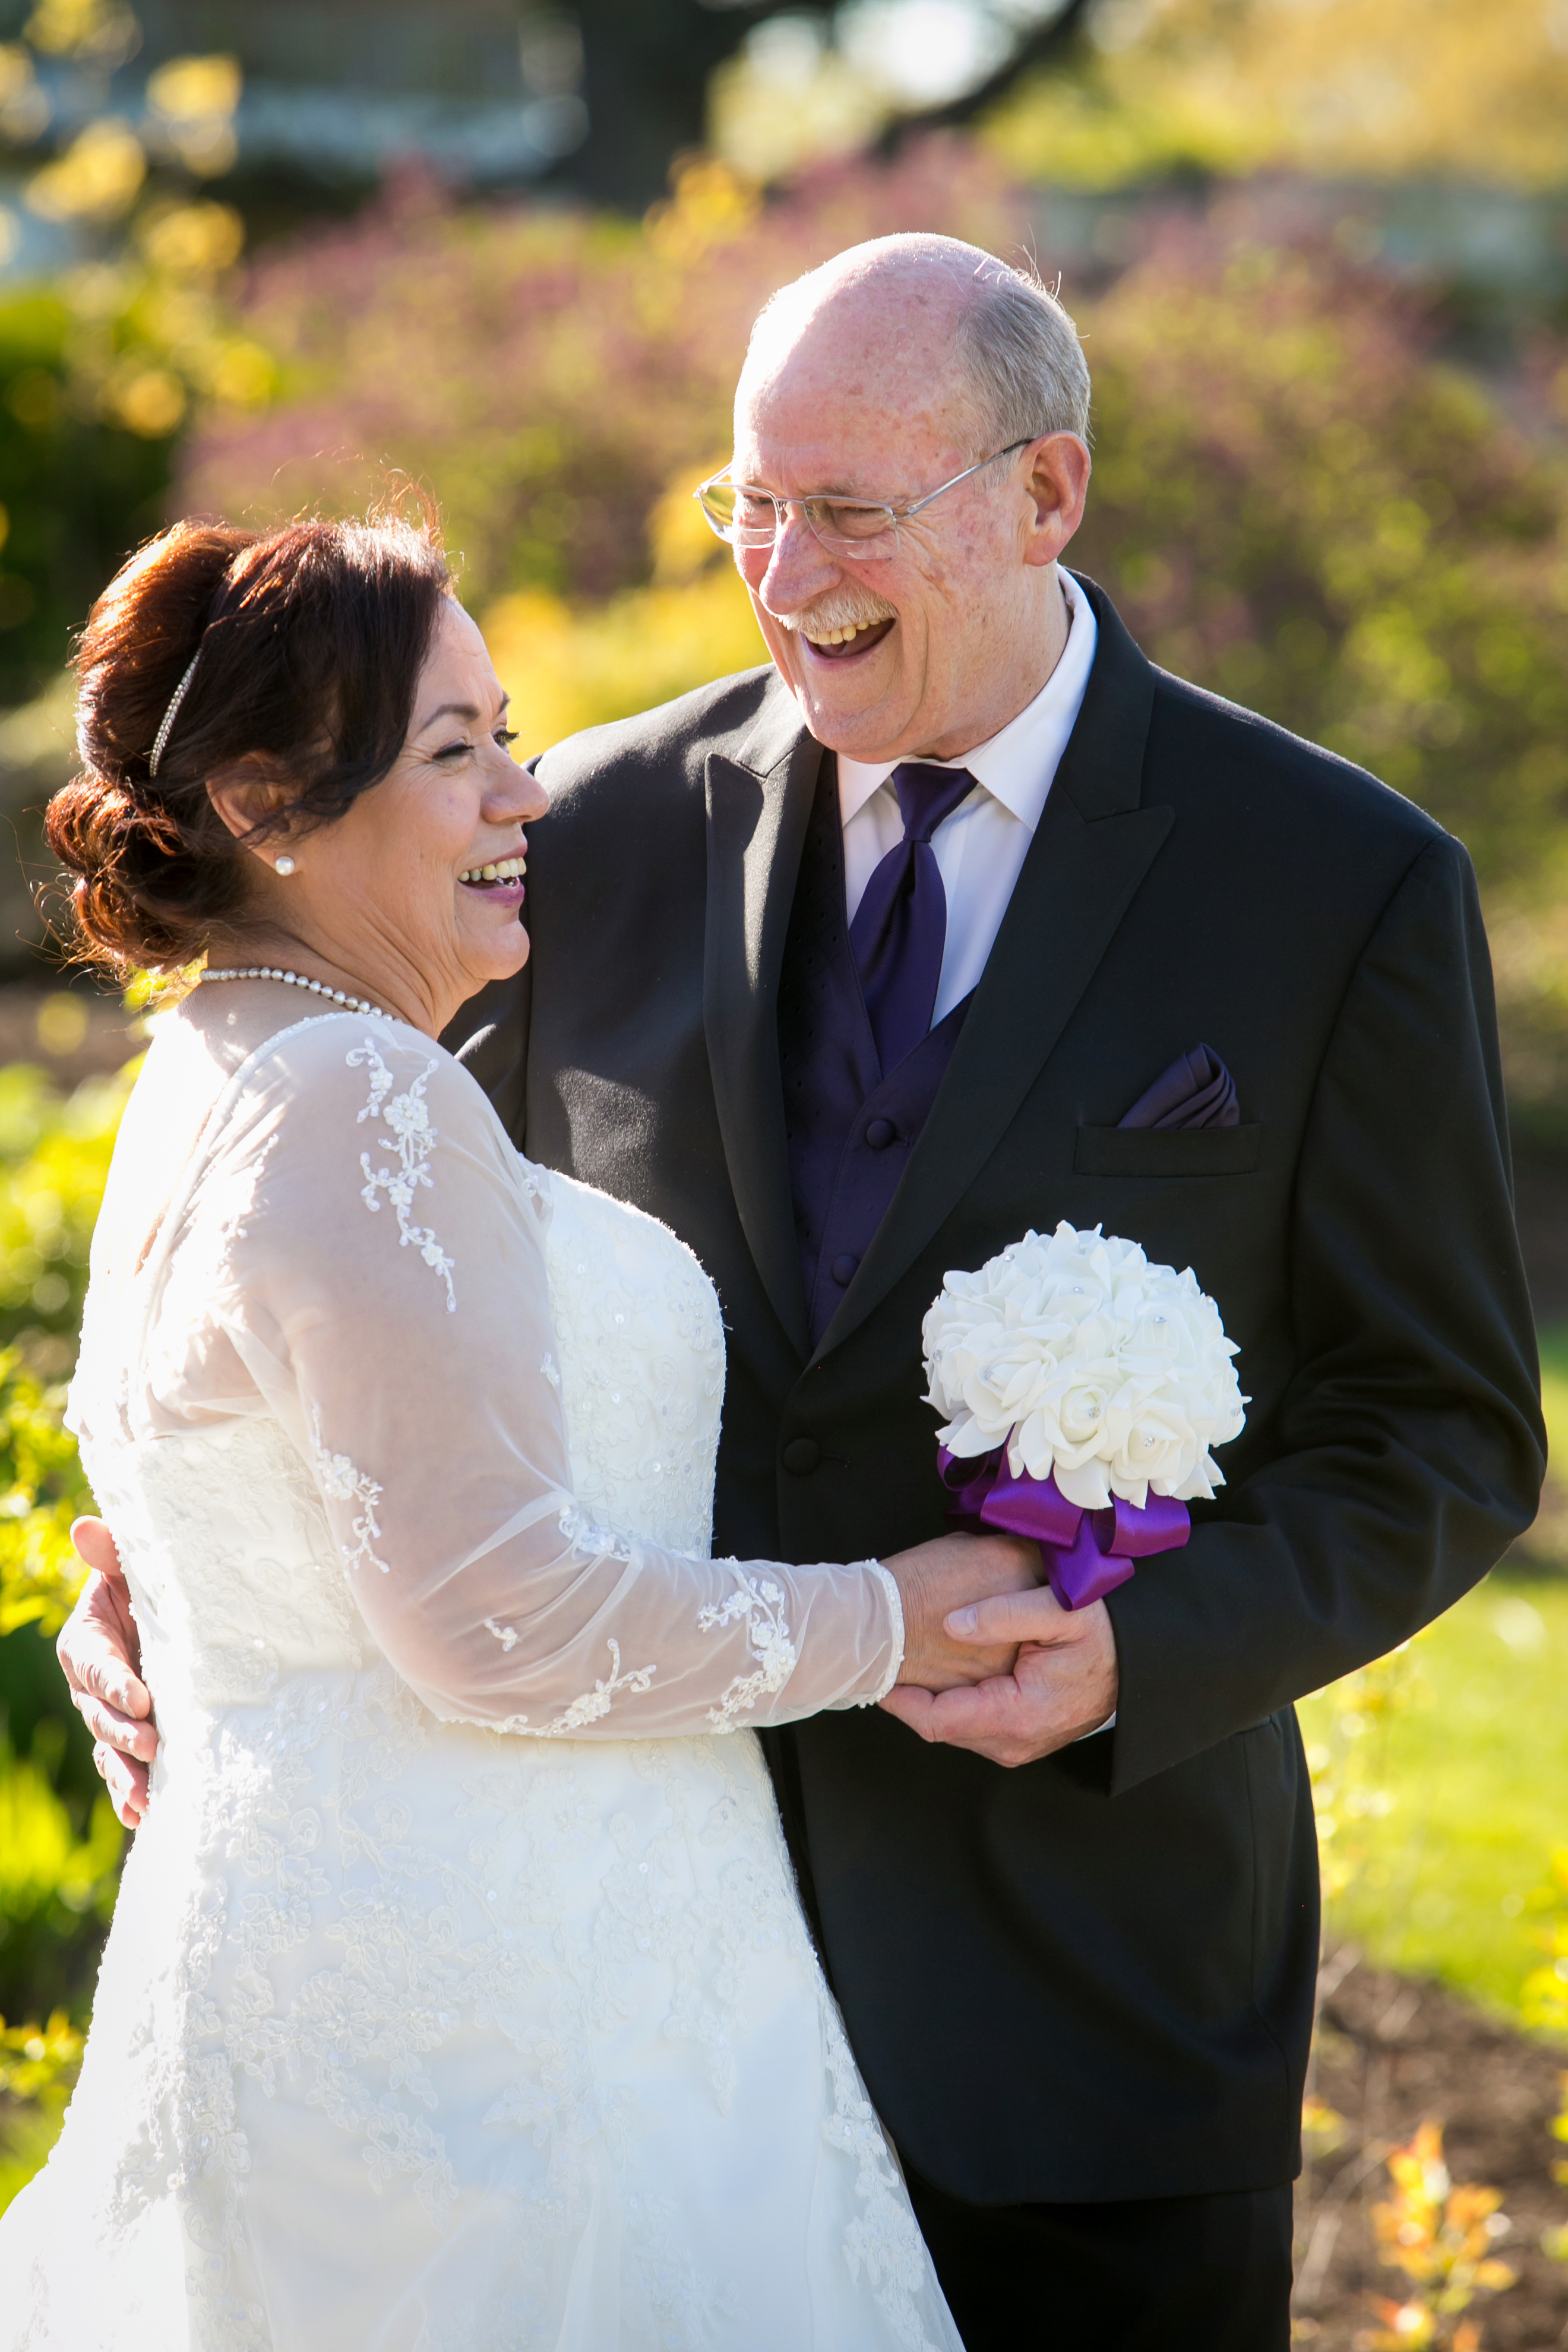 True Love After 50 years